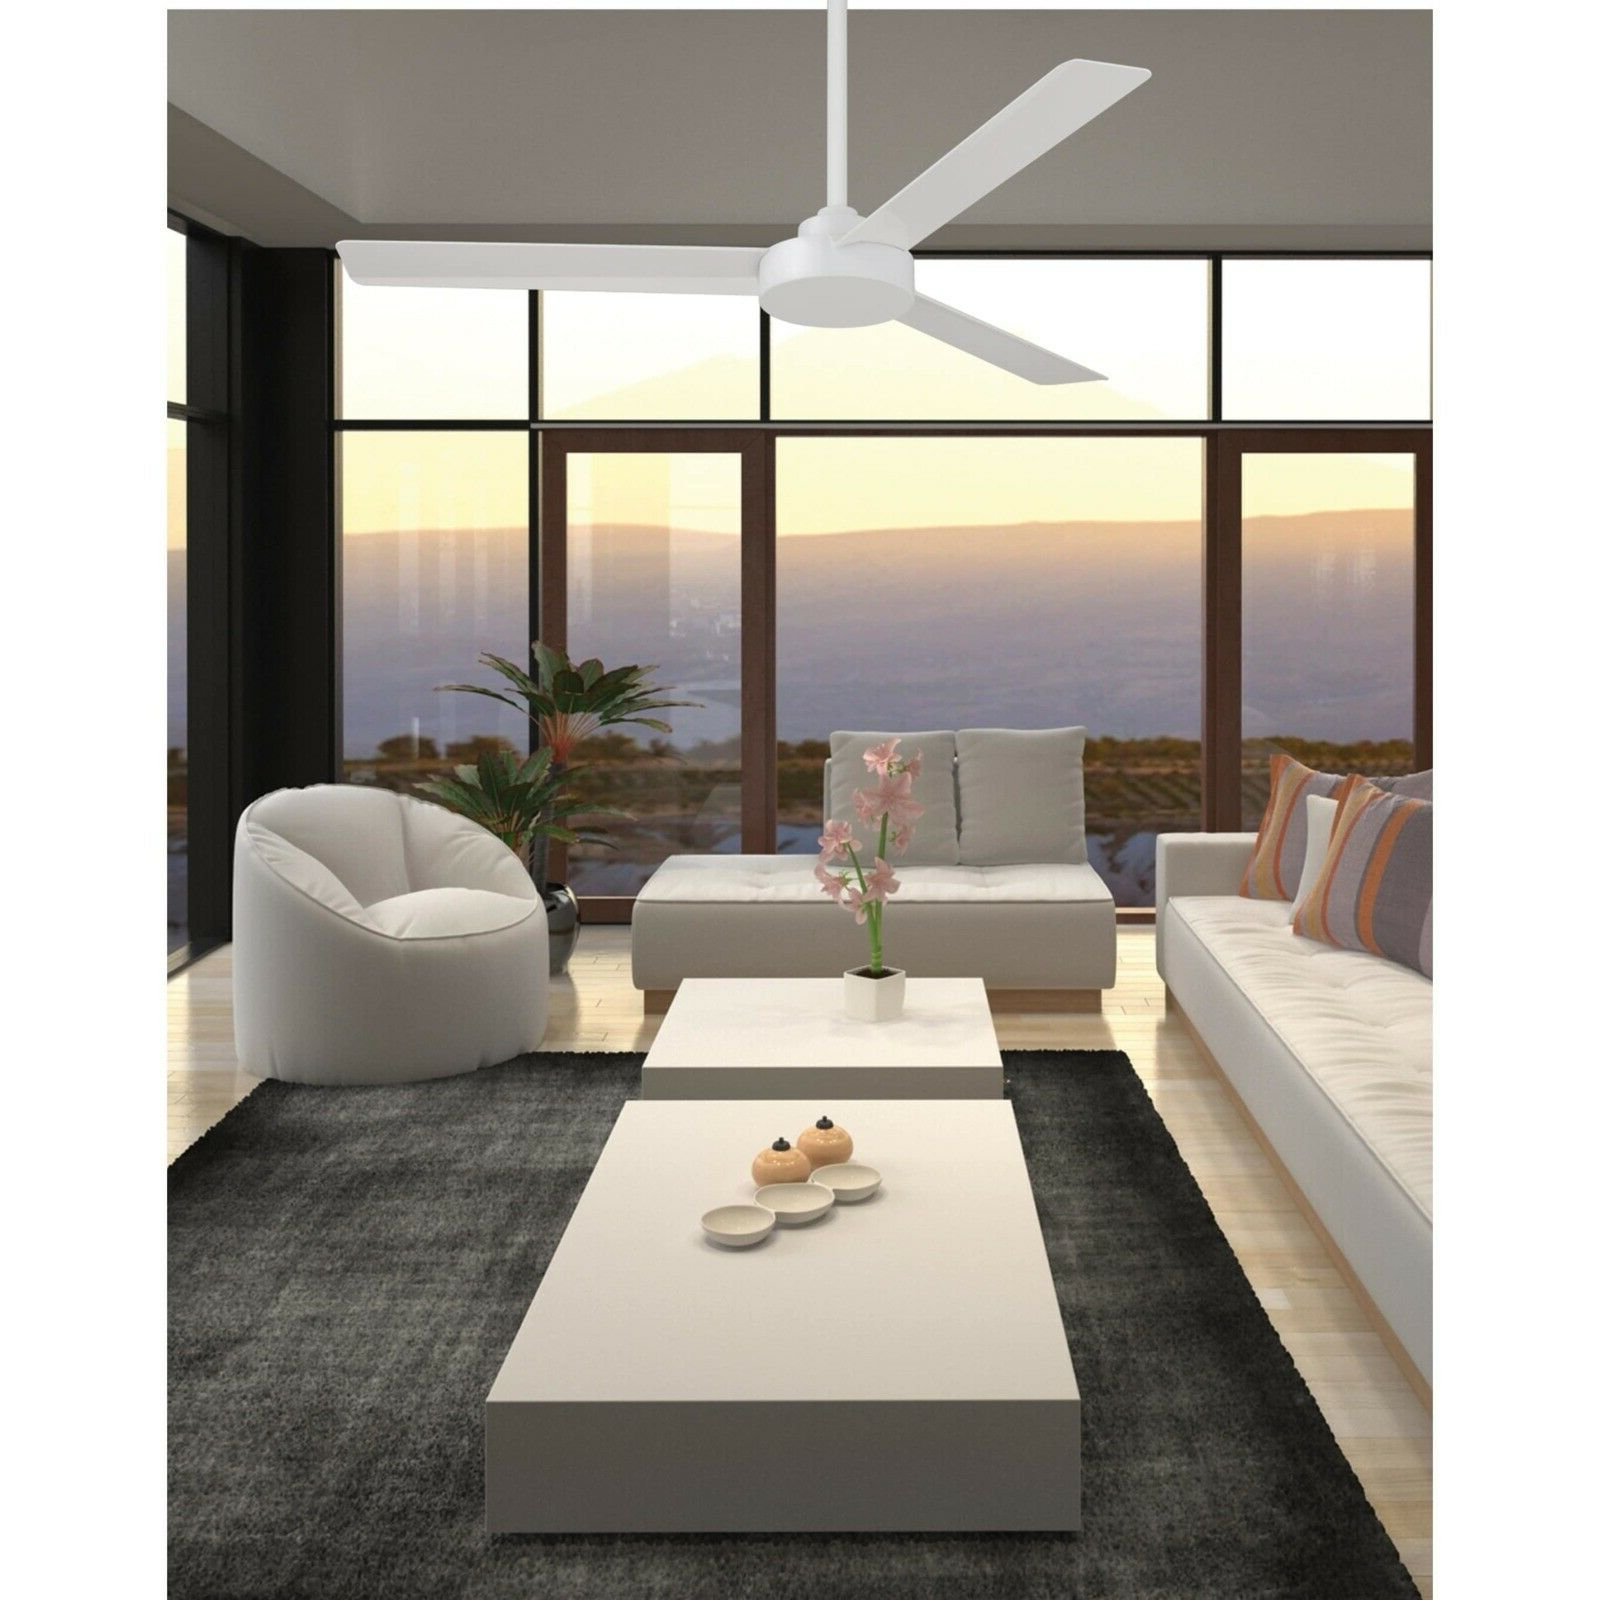 "Roto 3 Blade Ceiling Fans With Fashionable Details About Ceiling Fan 52'' With 3 Blade 6"" Downrod Flat Aluminum Construction White Finish (View 19 of 20)"